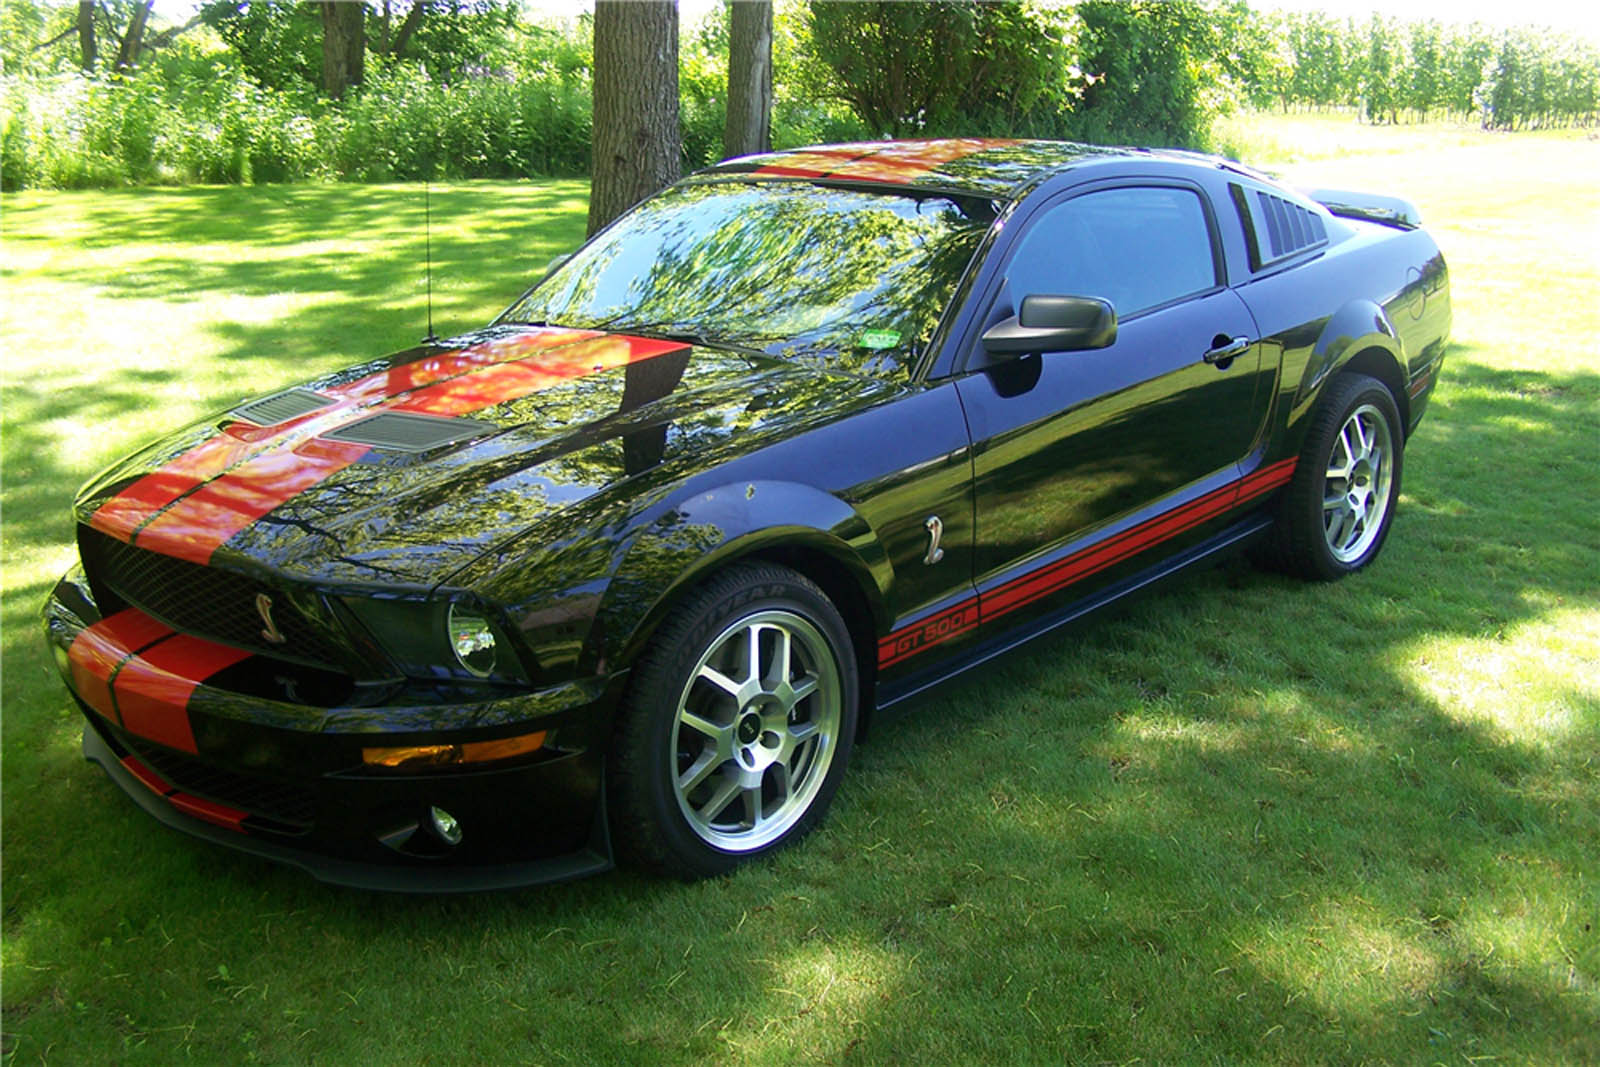 eleanor ford 39 s own shelby gt500 sold for 55k. Black Bedroom Furniture Sets. Home Design Ideas